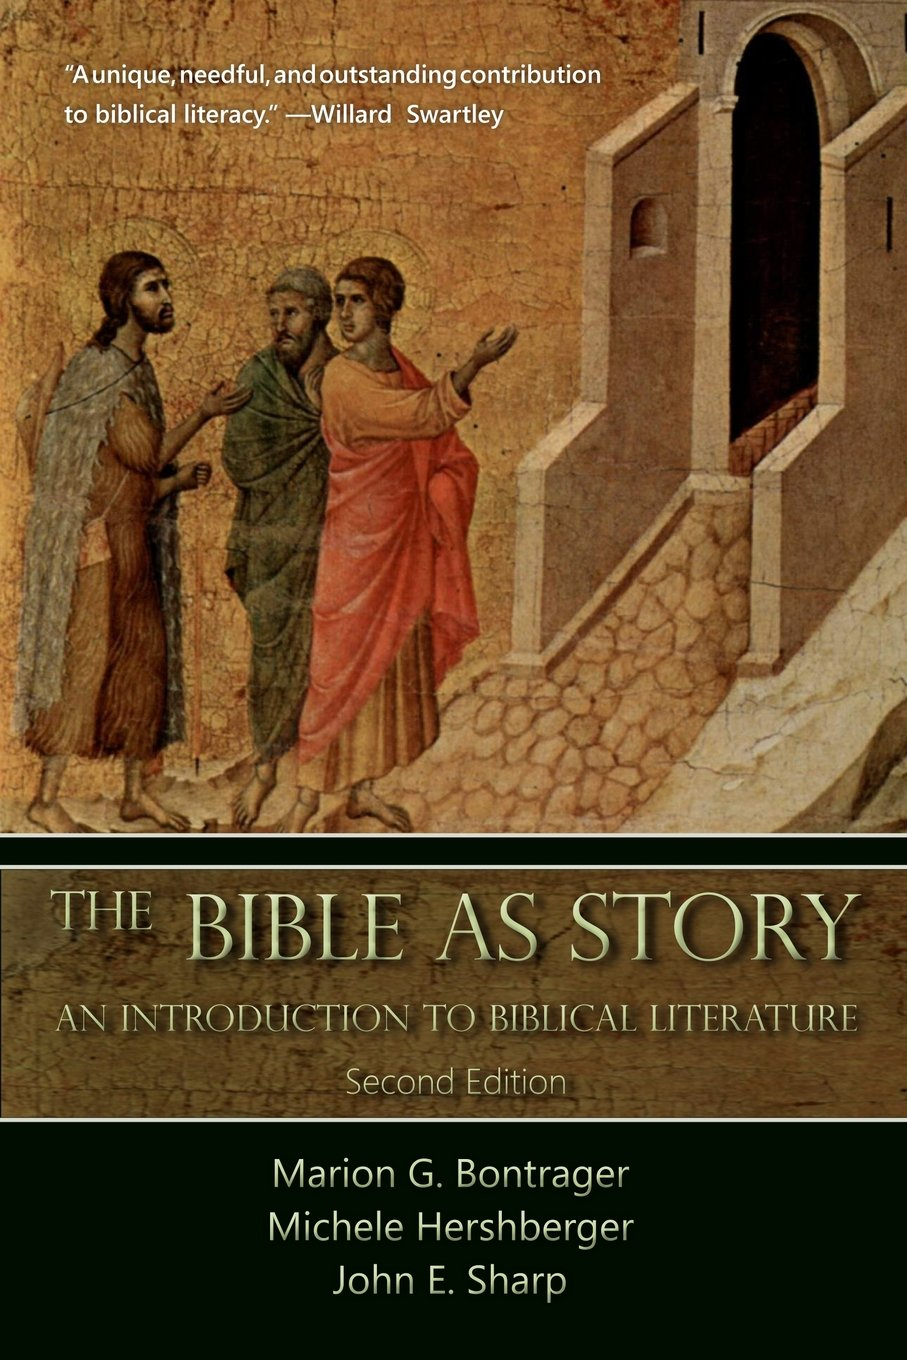 The Bible as Story: An Introduction to Biblical Literature